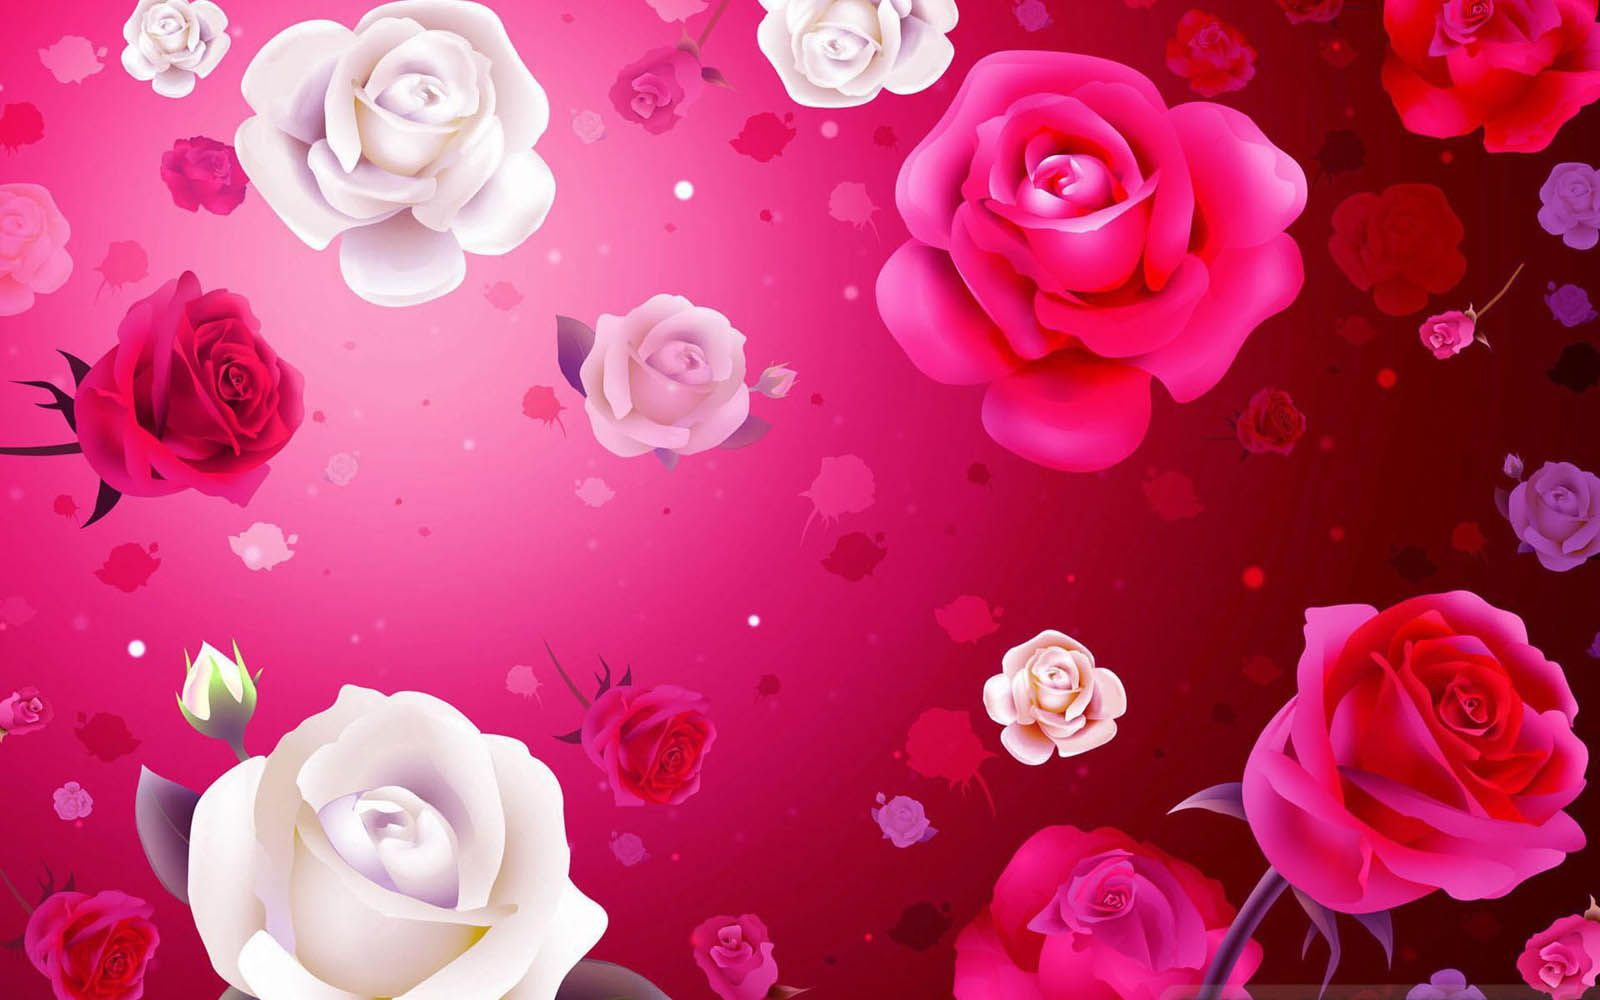 30 Beautiful Valentines Day Wallpapers For Your Desktop Valentine Wallpaper Hd Valentine Background Flower Wallpaper